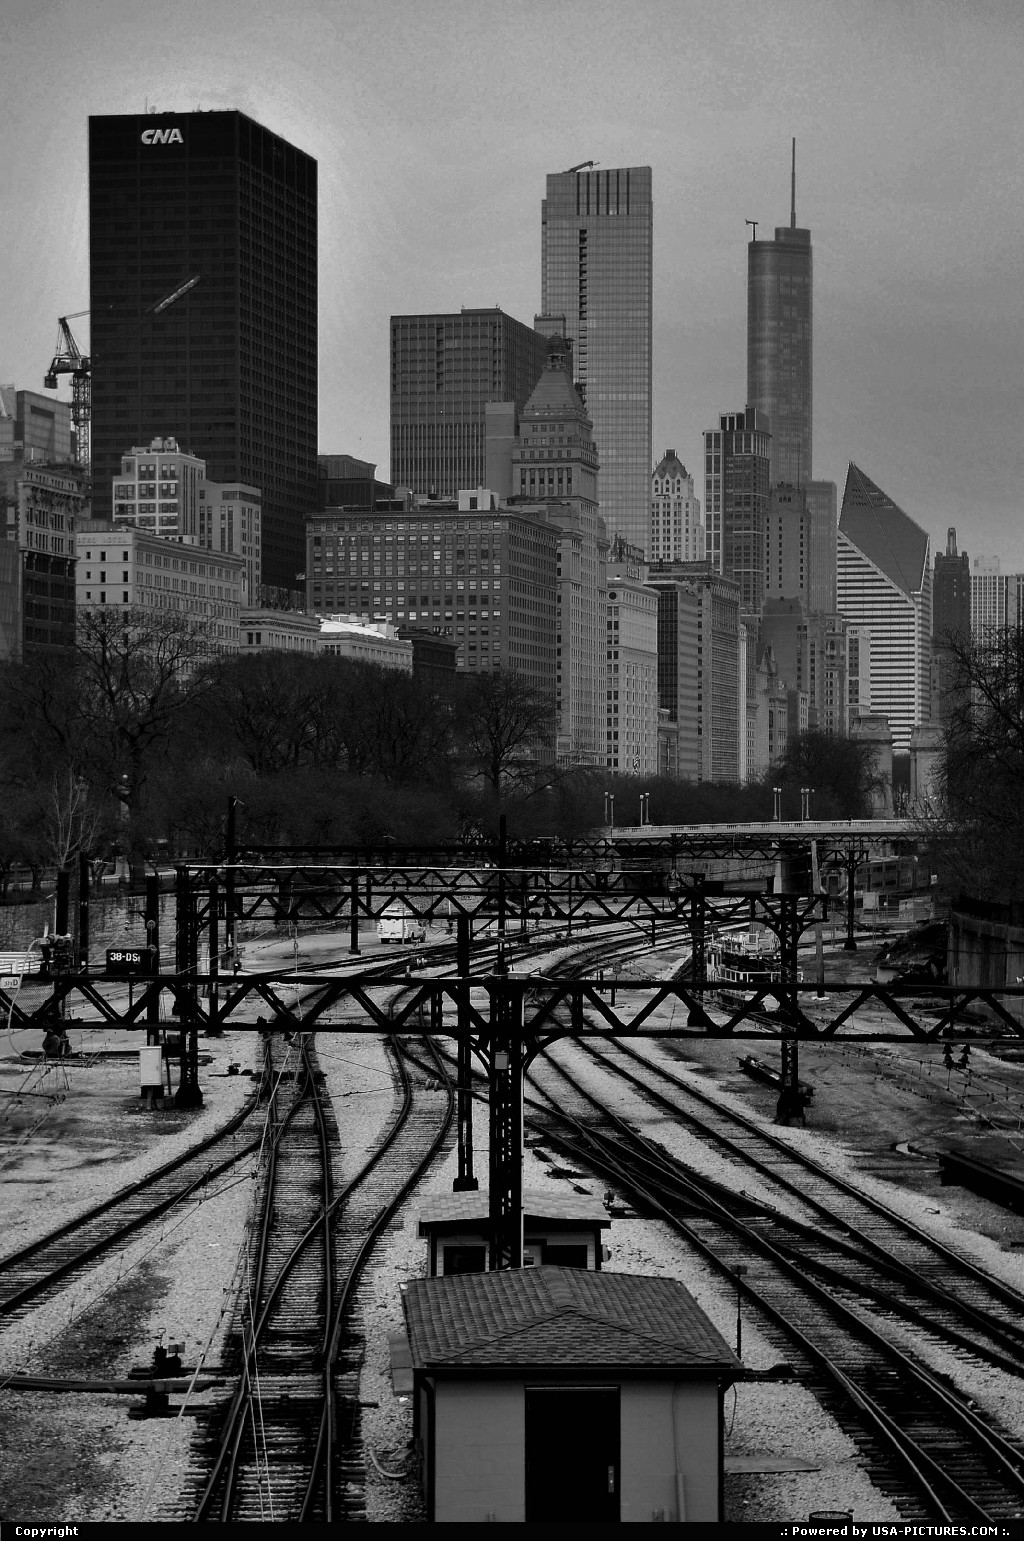 Picture by Parmeland:ChicagoIllinois